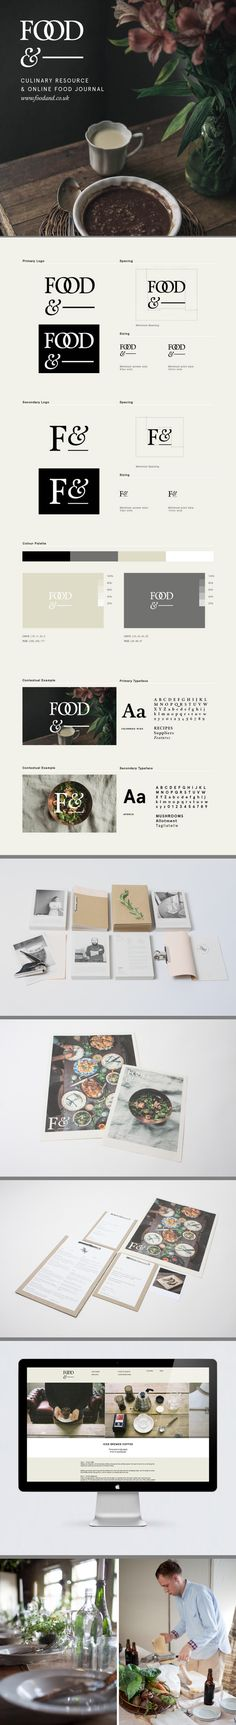 food& visual identity | #stationary #corporate #design #corporatedesign #identity #branding #marketing < repinned by www.BlickeDeeler.de | Take a look at www.LogoGestaltung-Hamburg.de